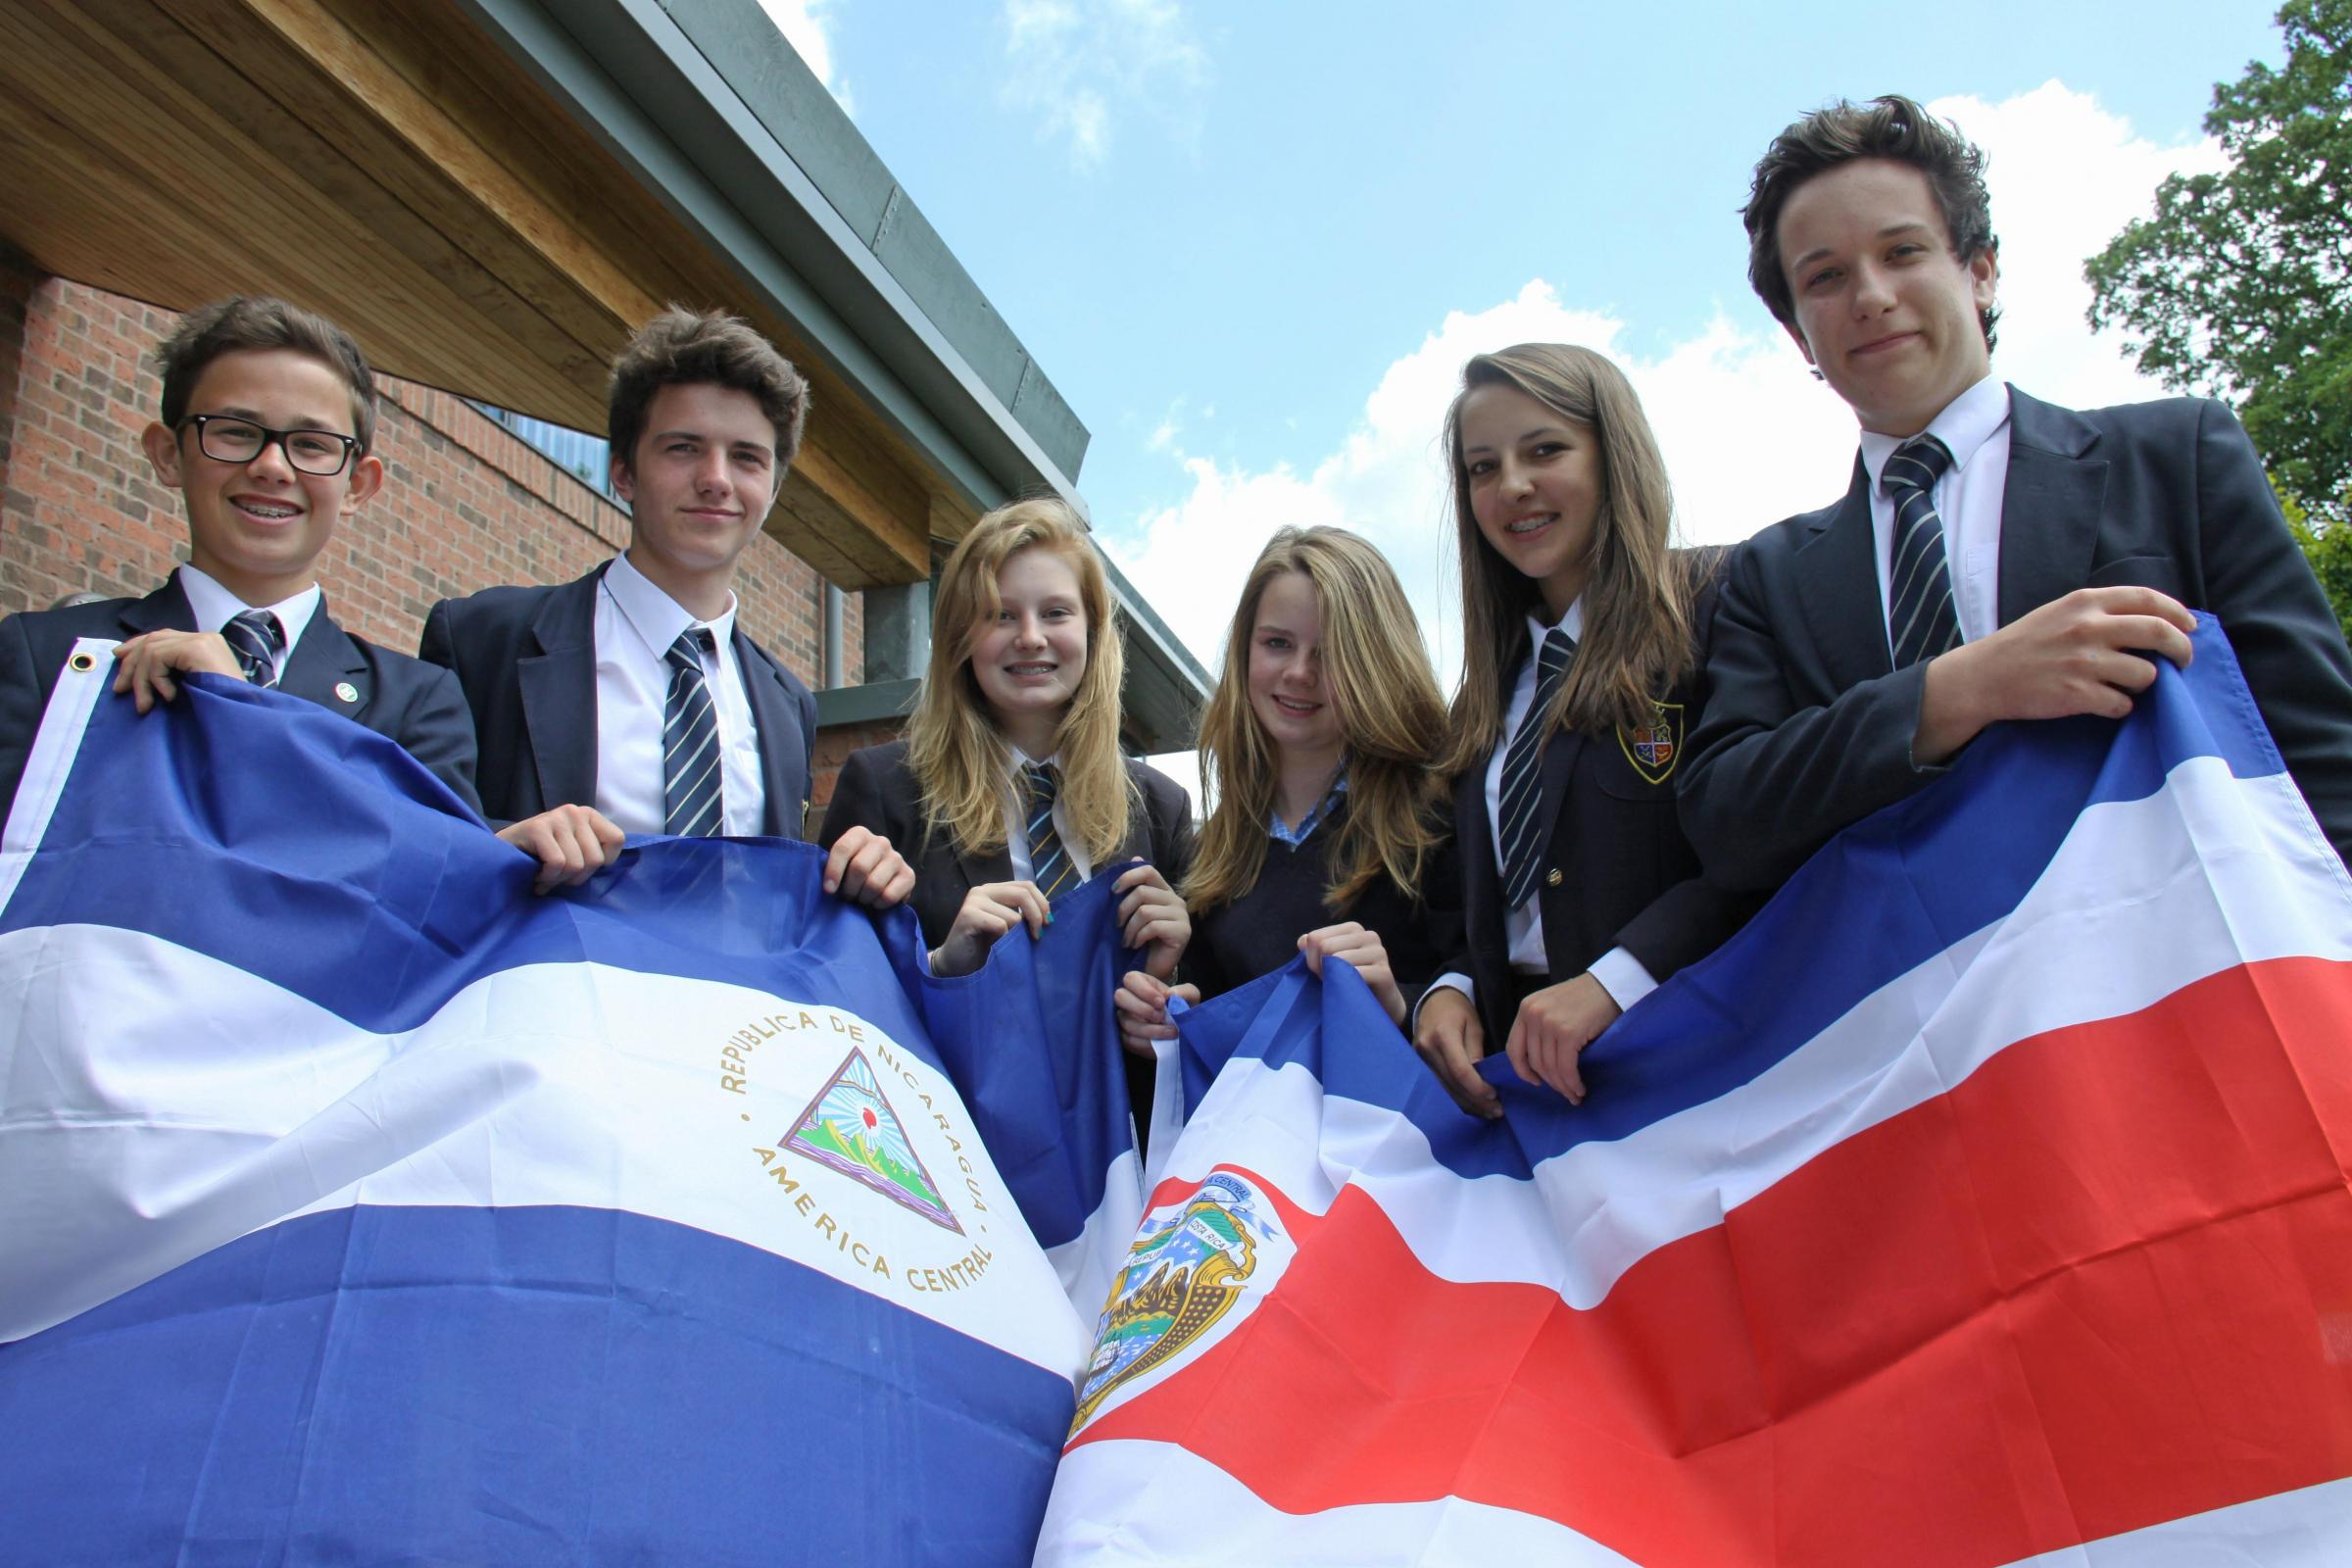 ADVENTURE-BOUND: Some of the students from Ripon Grammar School who are spending four weeks in Nicaragua and Costa Rica this summer, (L-R) Patrick Moon, Josh Belward, Lauren Pybus, Erin Fowler, Lucy Kettlewell and Will Stobbs.